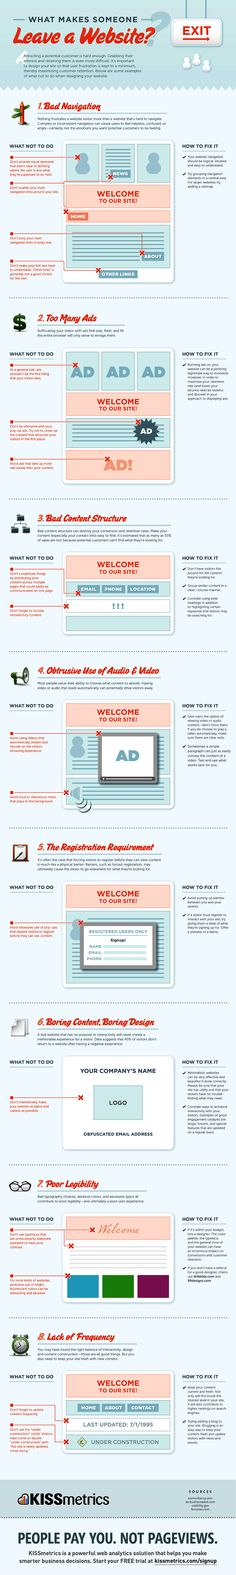 #infographic: Why People Leave Your Website - SeoCustomer